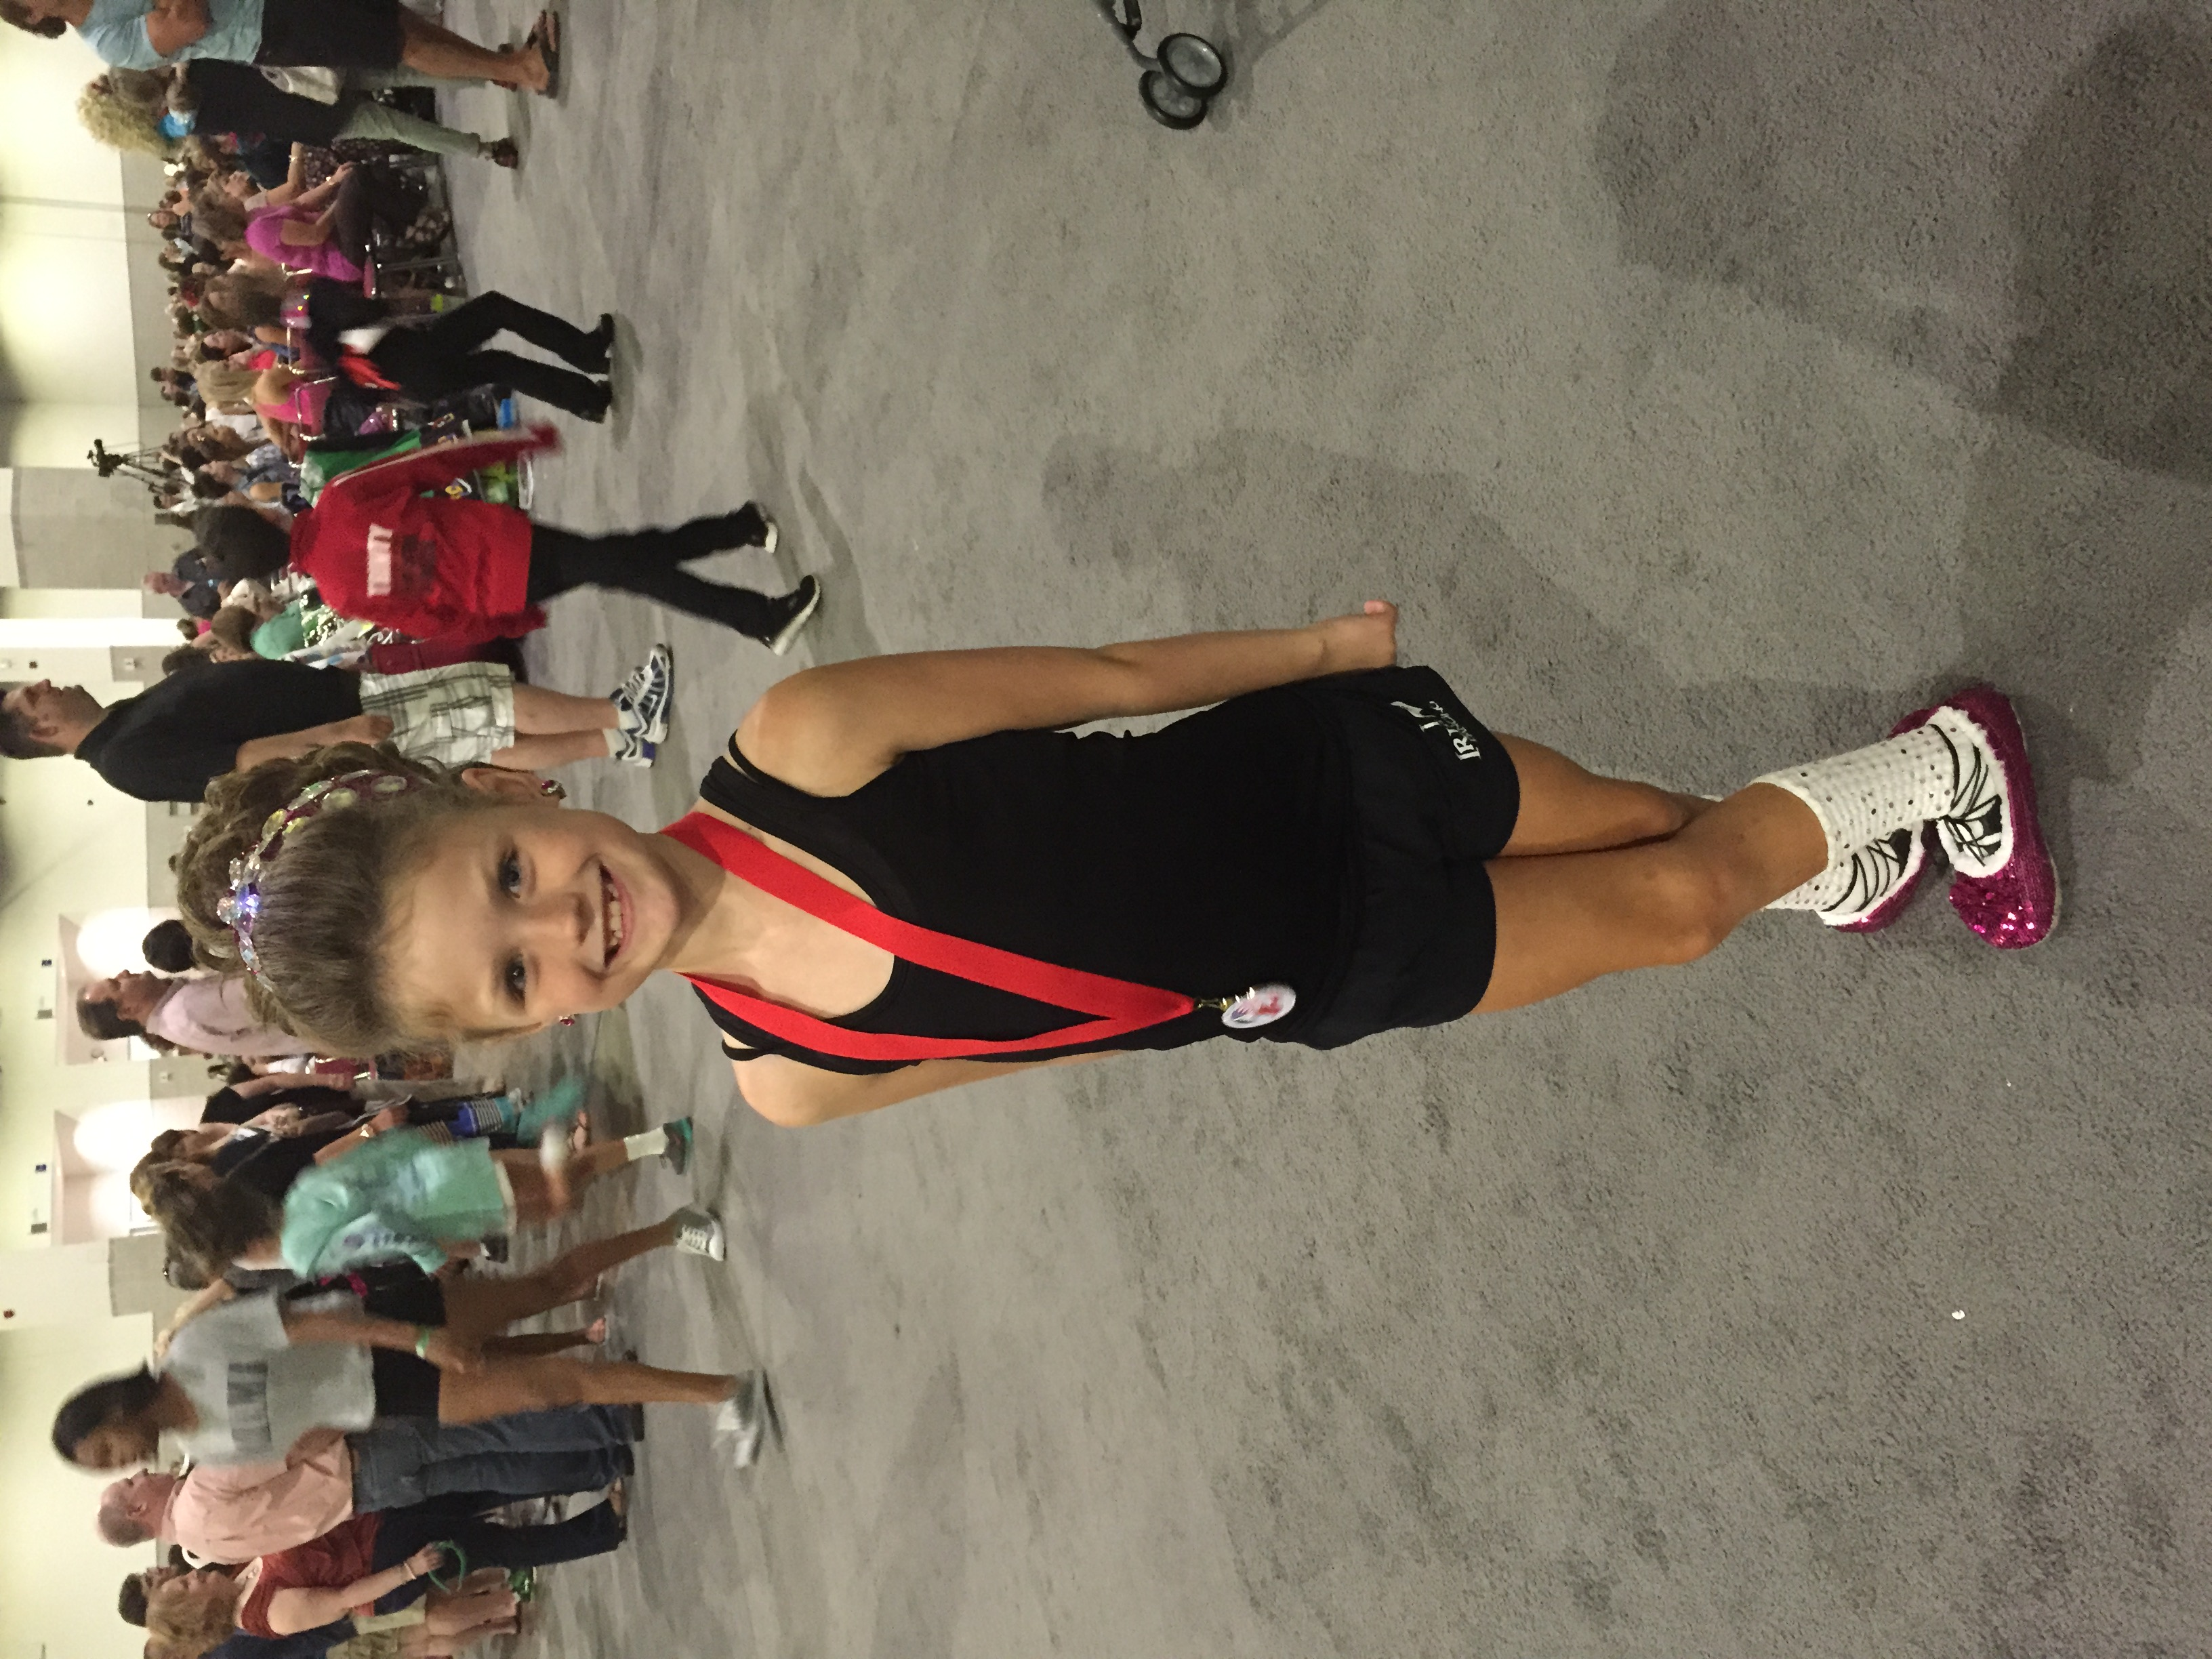 Kaelin Donahue Girls U8 40th place at the 2015 Nationals!